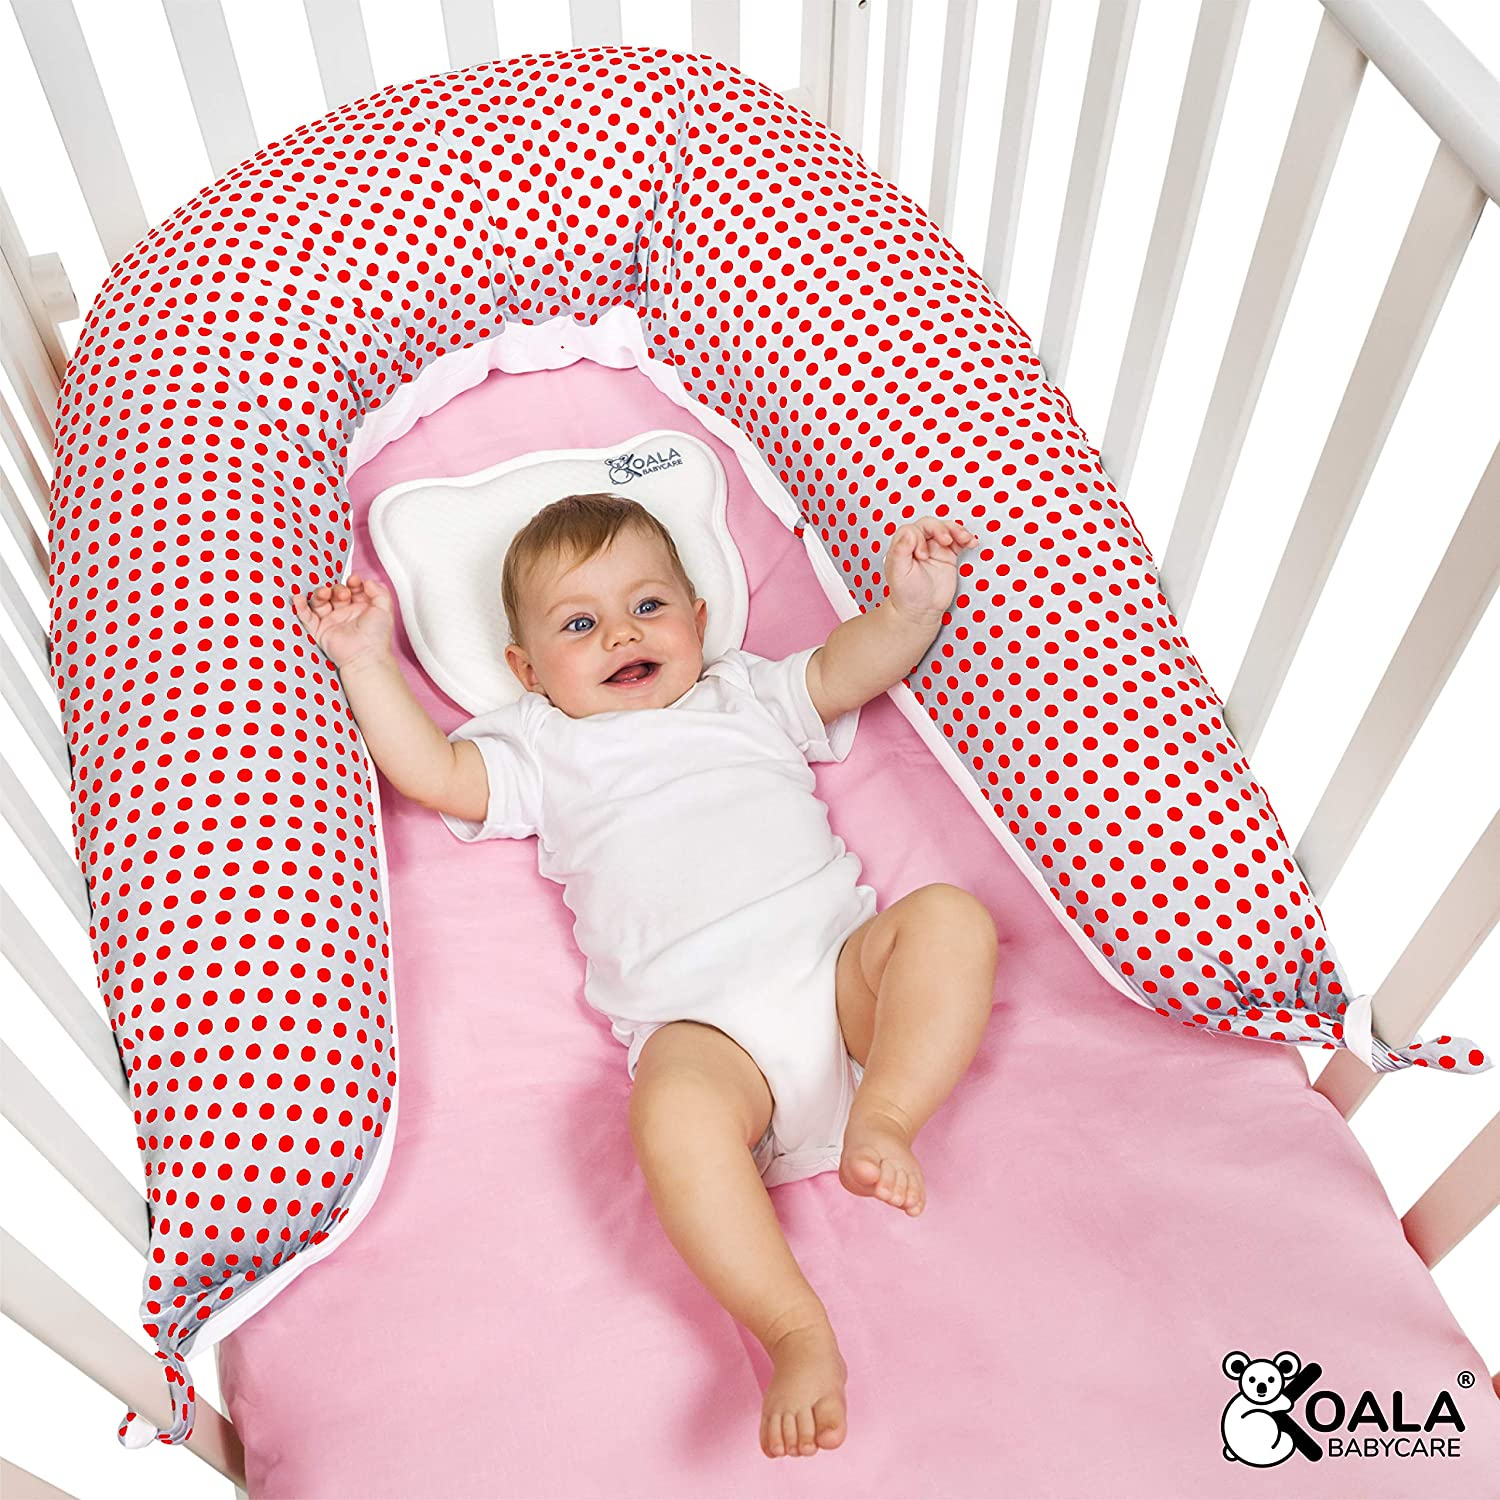 Right Support of Mother and Child Body Reducer and Crib Bumper Cradle KHUGS Koala Babycare/® Nursing V Pillow for Sleeping and Breastfeeding Maternity and Pregnancy Pil-lows with Retractable Zip